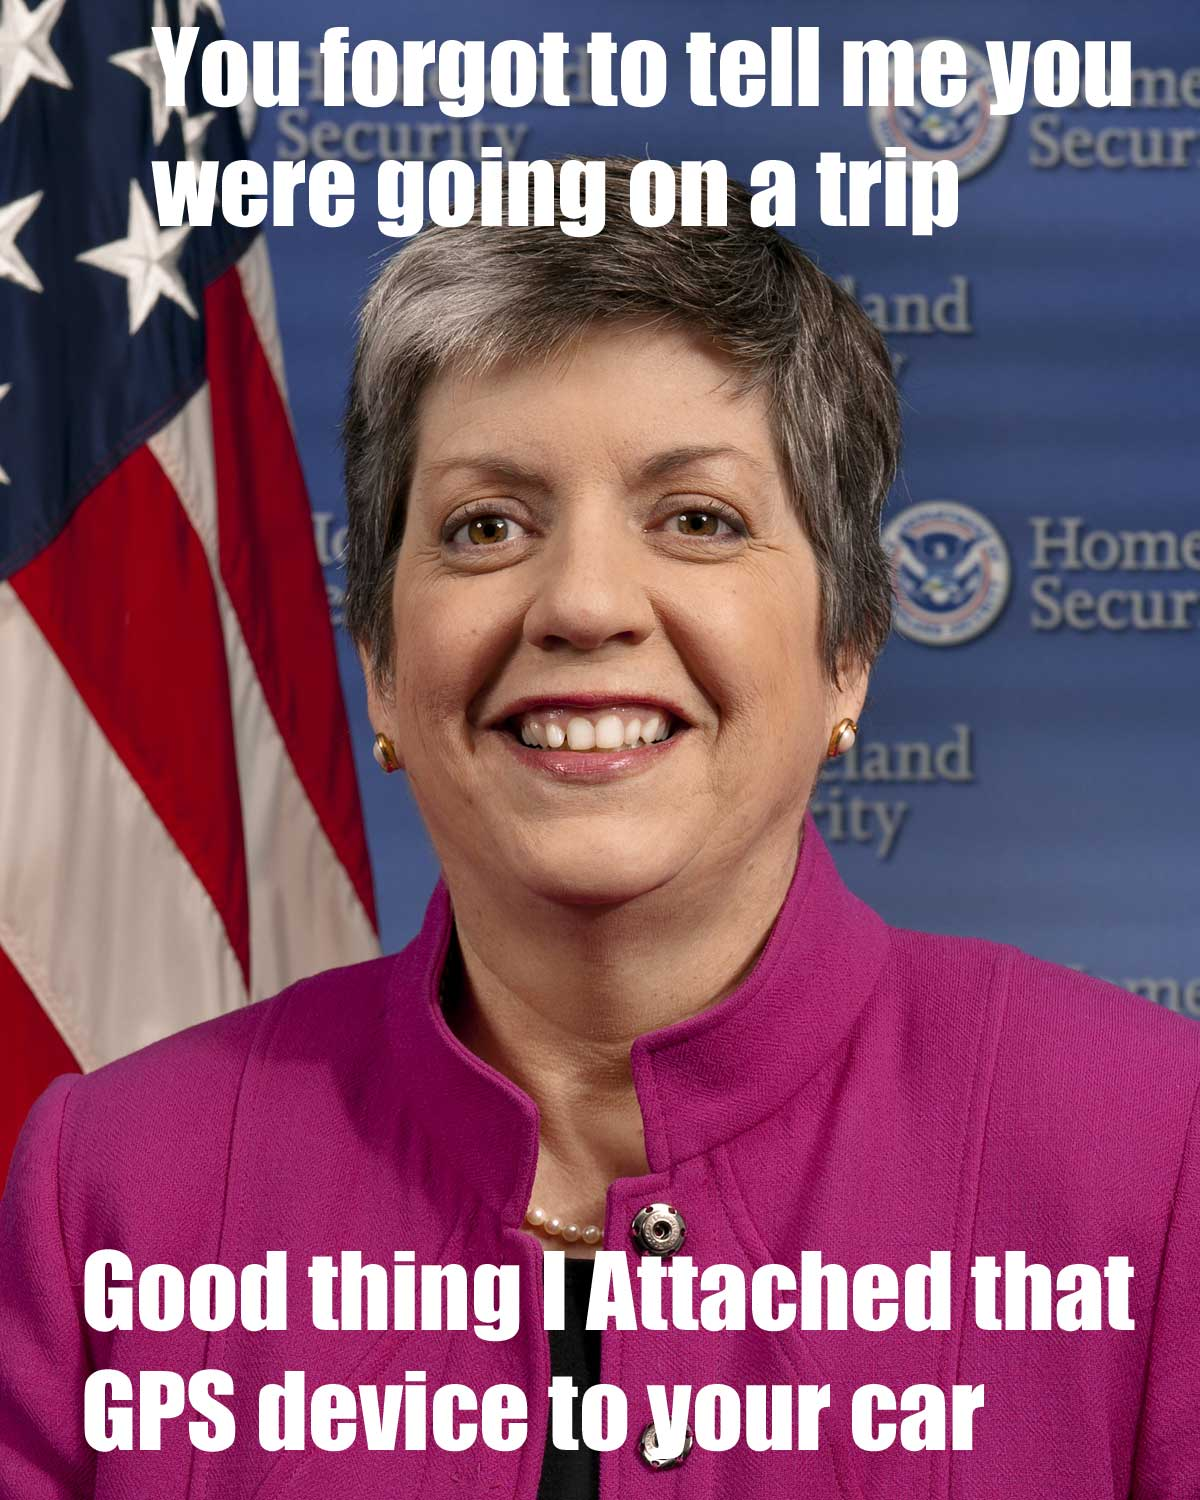 overly-attached-government